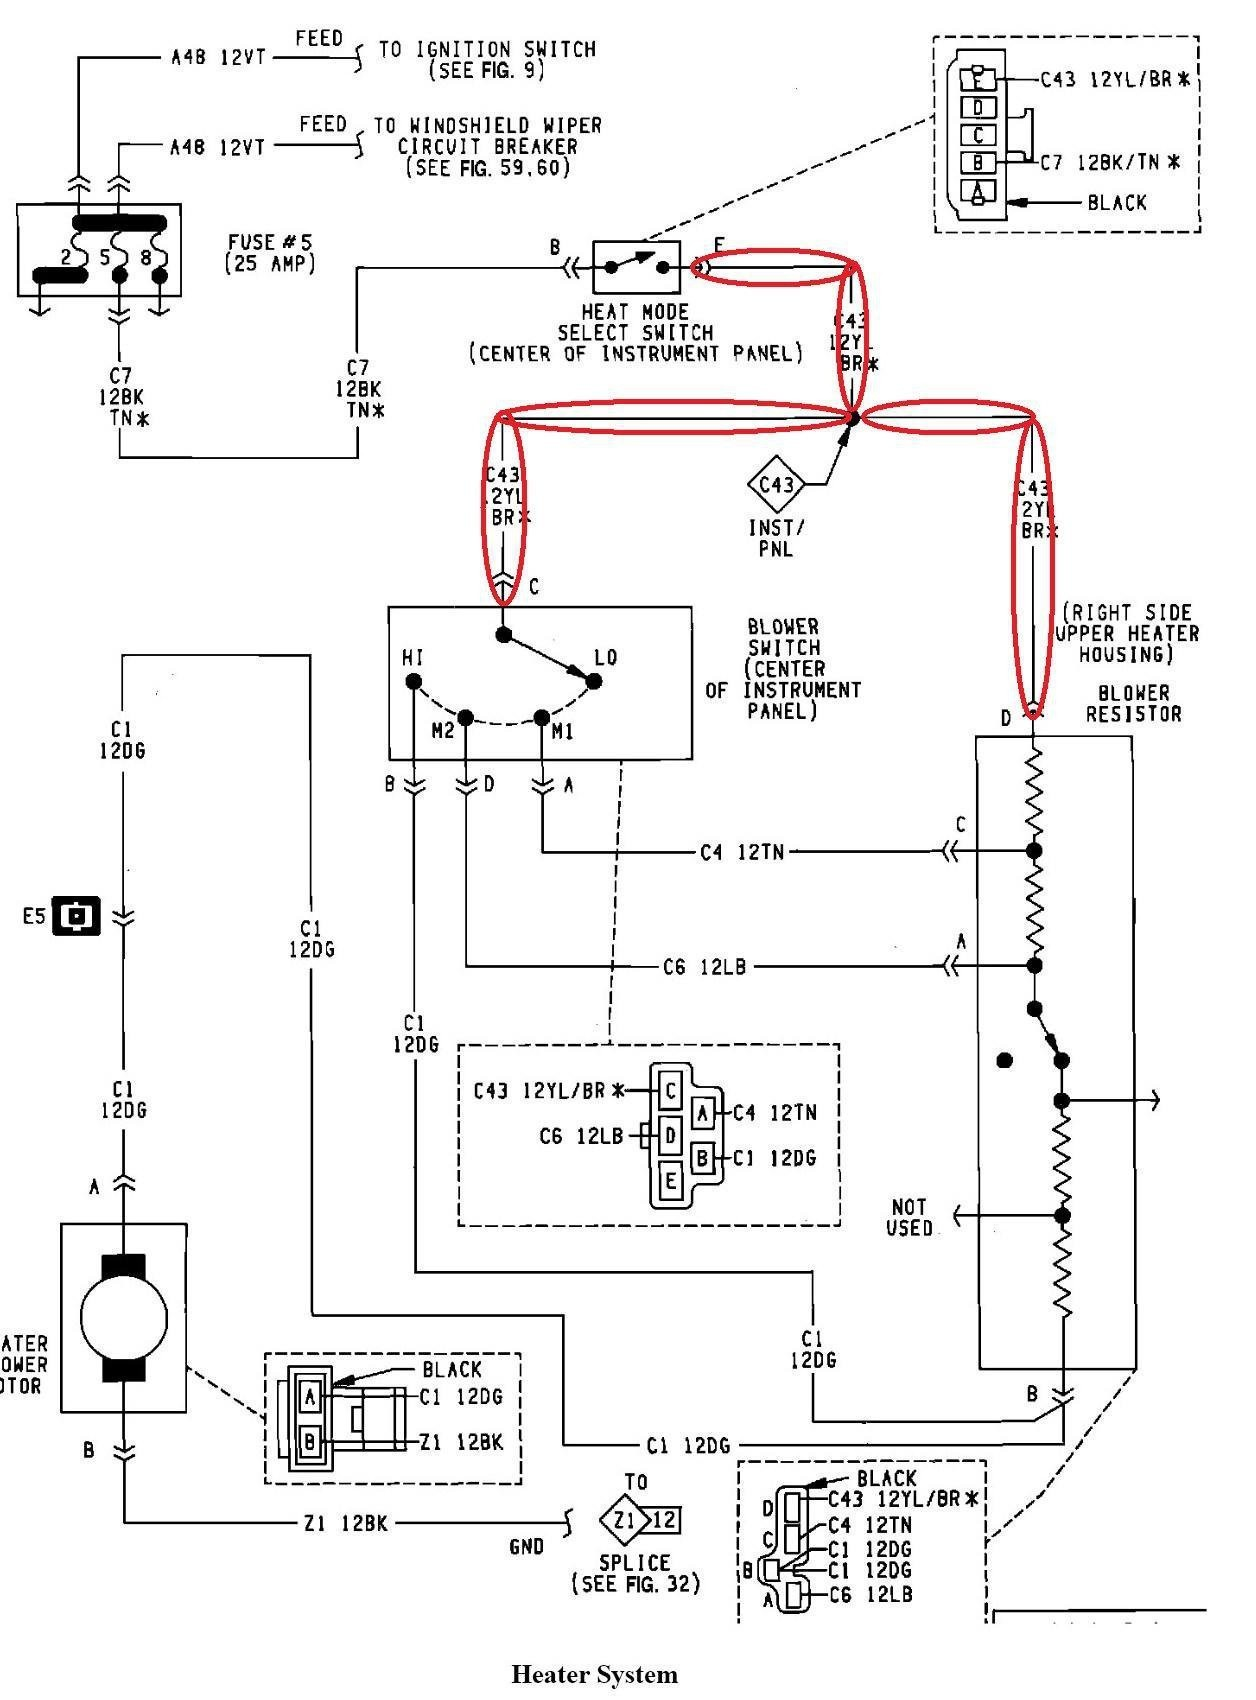 Melex 252 Golf Cart Wiring Diagram Library Amf For Voltage Reducer Custom U2022 36 Volt